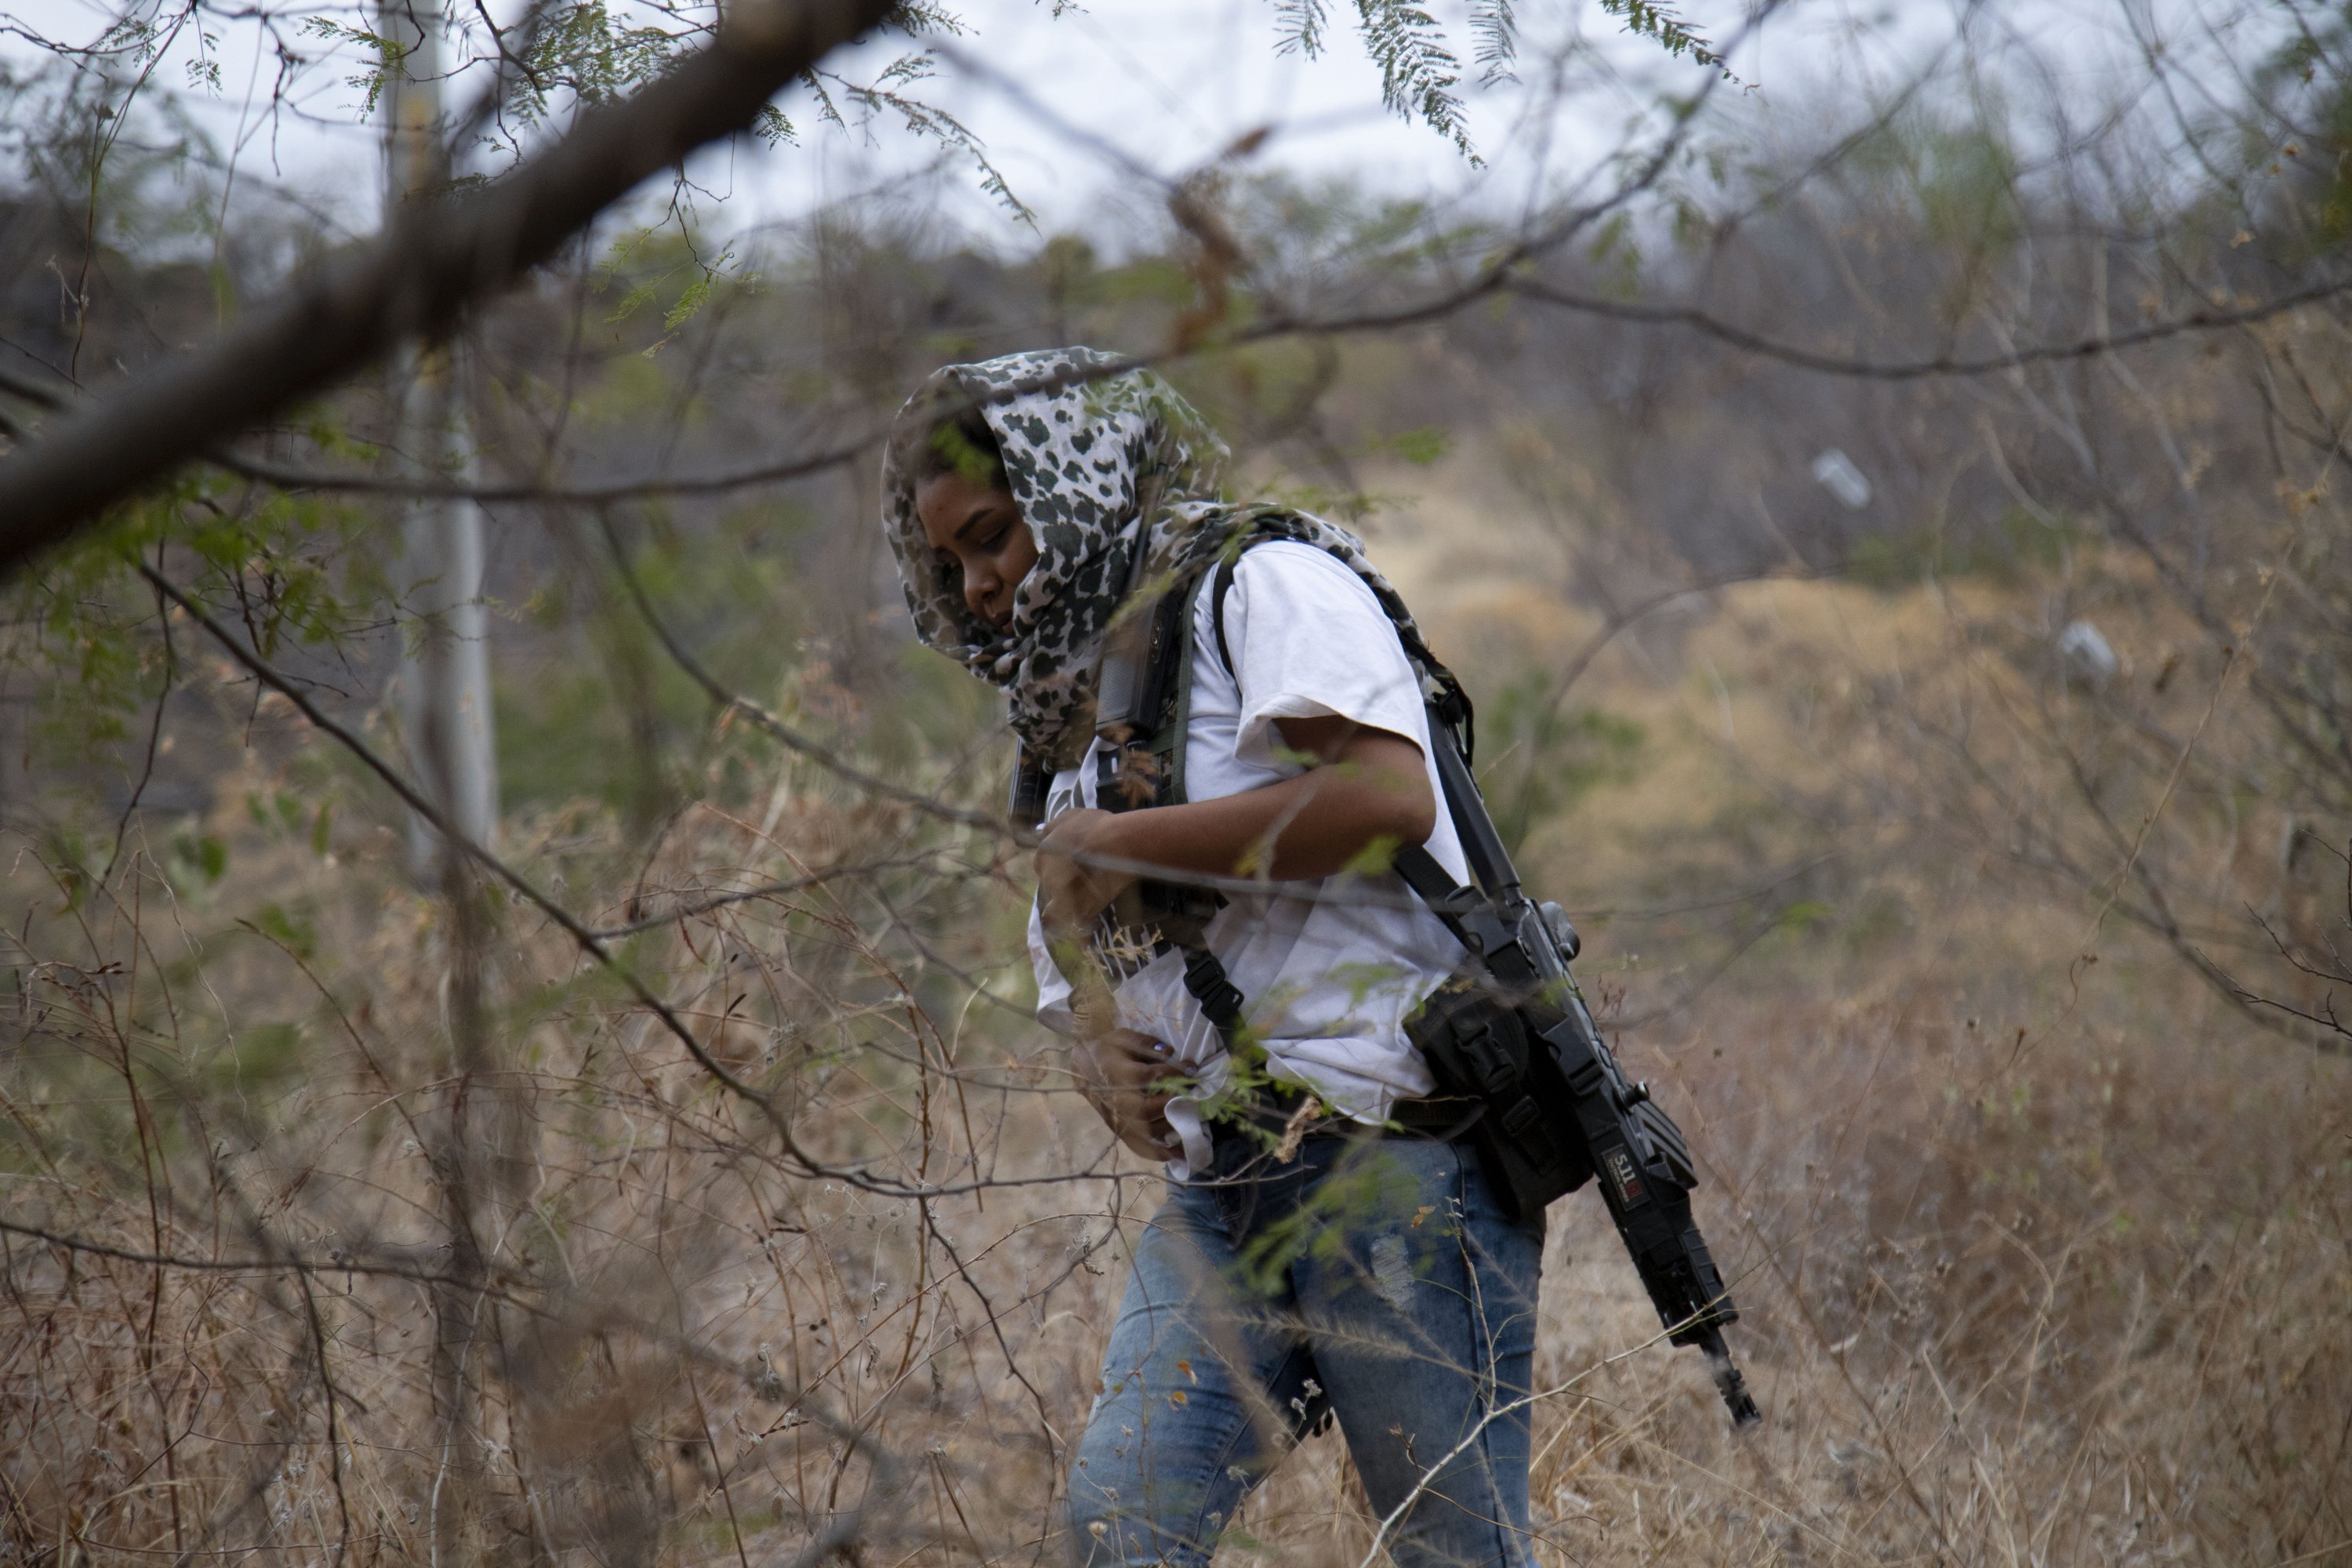 In Mexico, women take front lines as vigilantes…